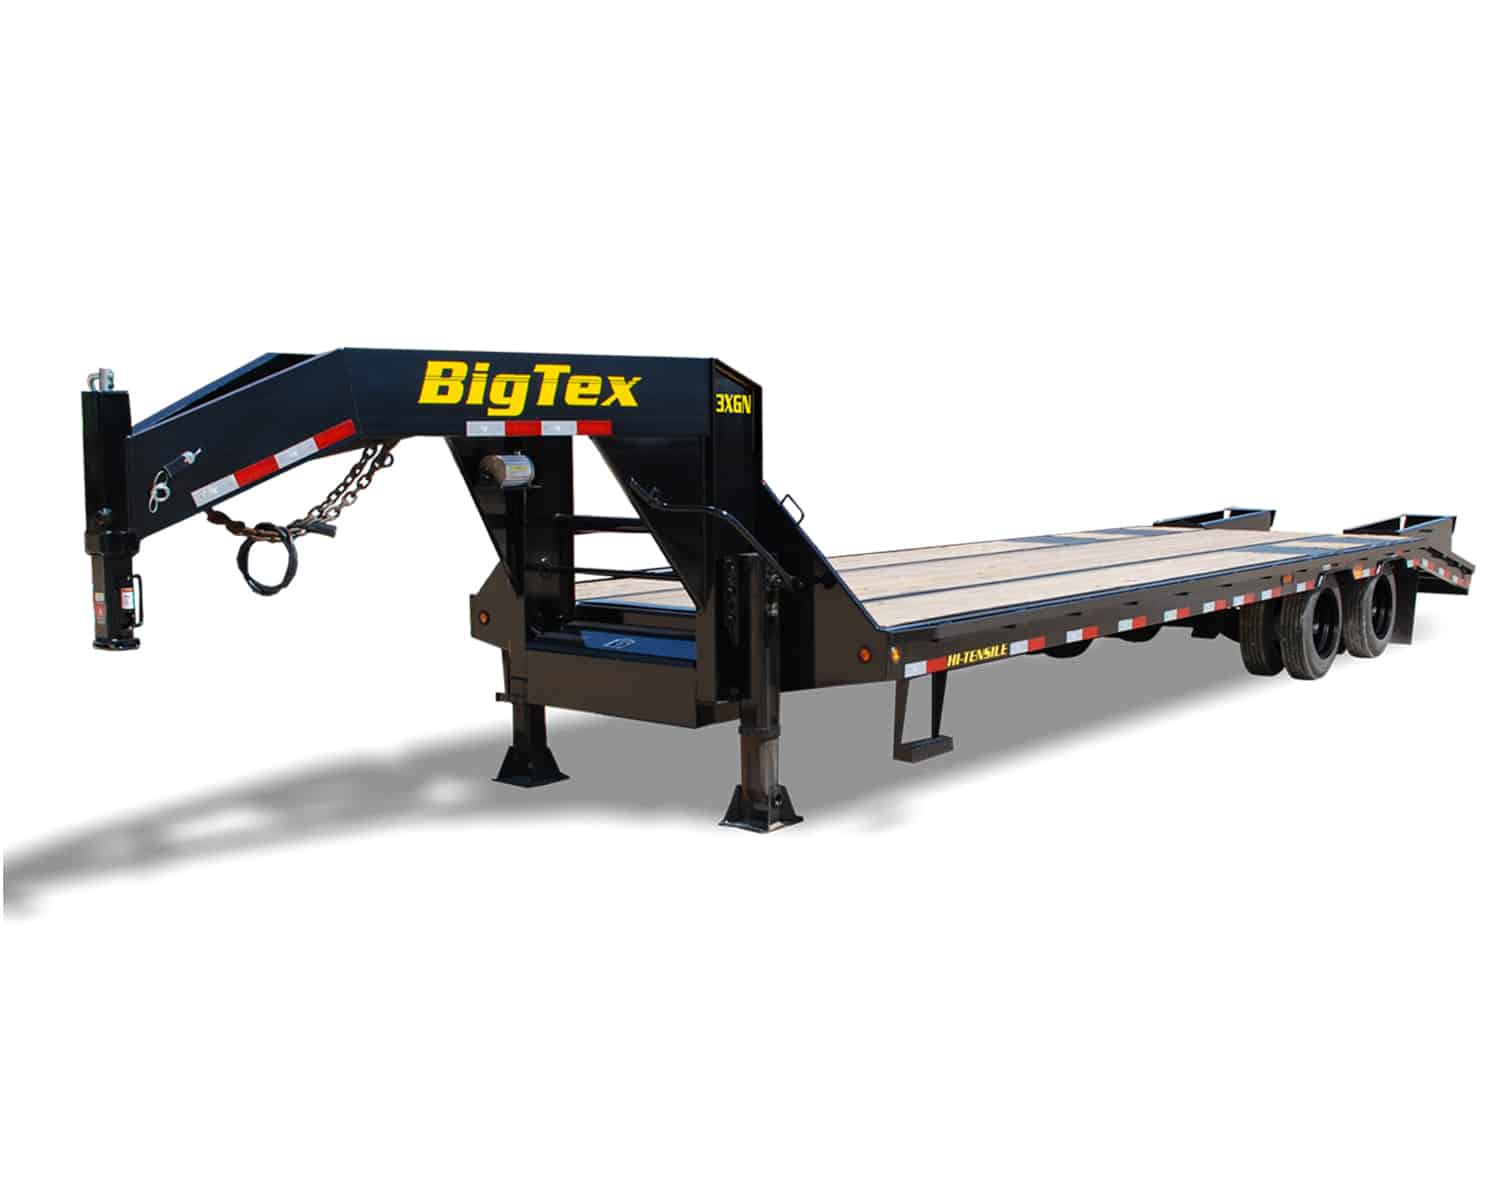 BLACK DECK OVER SUPER HEAVY DUTY EQUIPMENT TRAILER WITH DOVE TAIL